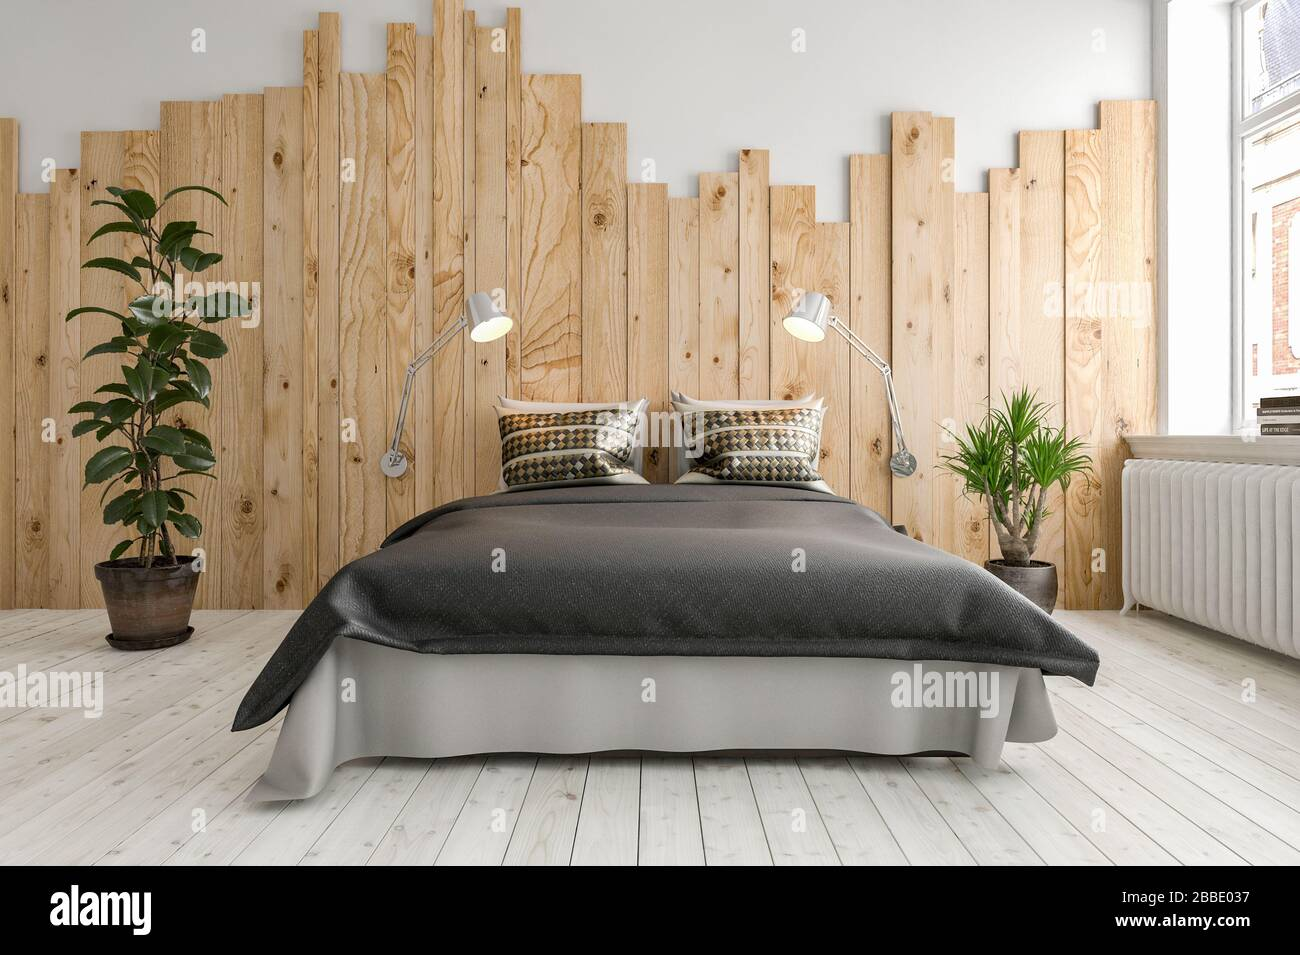 Modern Neat Minimalist Bedroom Interior With Double Divan Style Bed Over A Painted White Wood Floor Flanked By Potted Plants Against A Wall With Featu Stock Photo Alamy